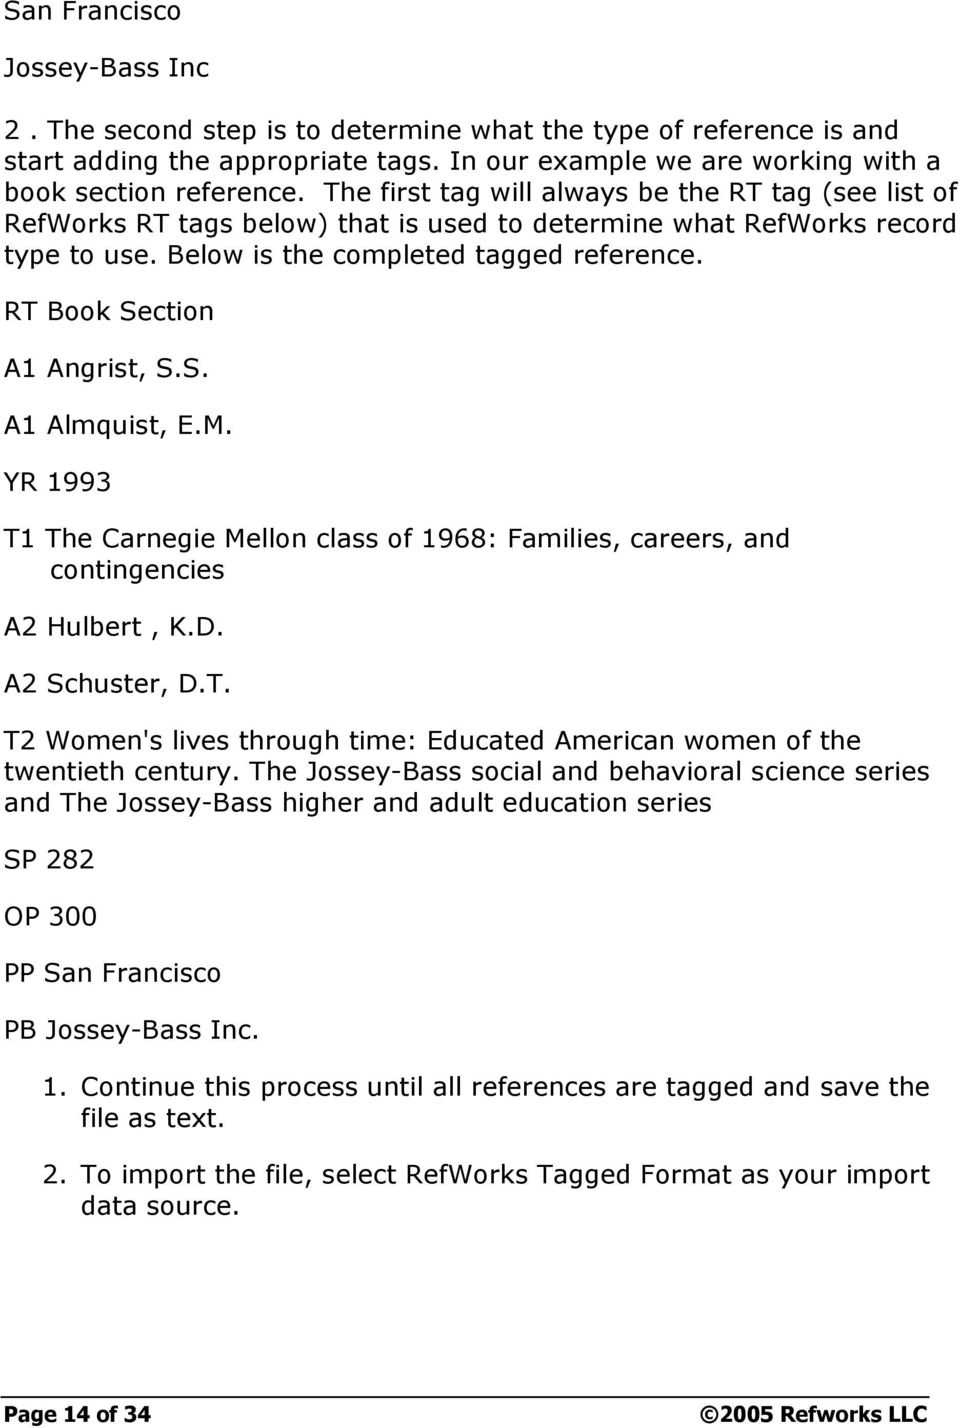 RT Book Section A1 Angrist, S.S. A1 Almquist, E.M. YR 1993 T1 The Carnegie Mellon class of 1968: Families, careers, and contingencies A2 Hulbert, K.D. A2 Schuster, D.T. T2 Women's lives through time: Educated American women of the twentieth century.